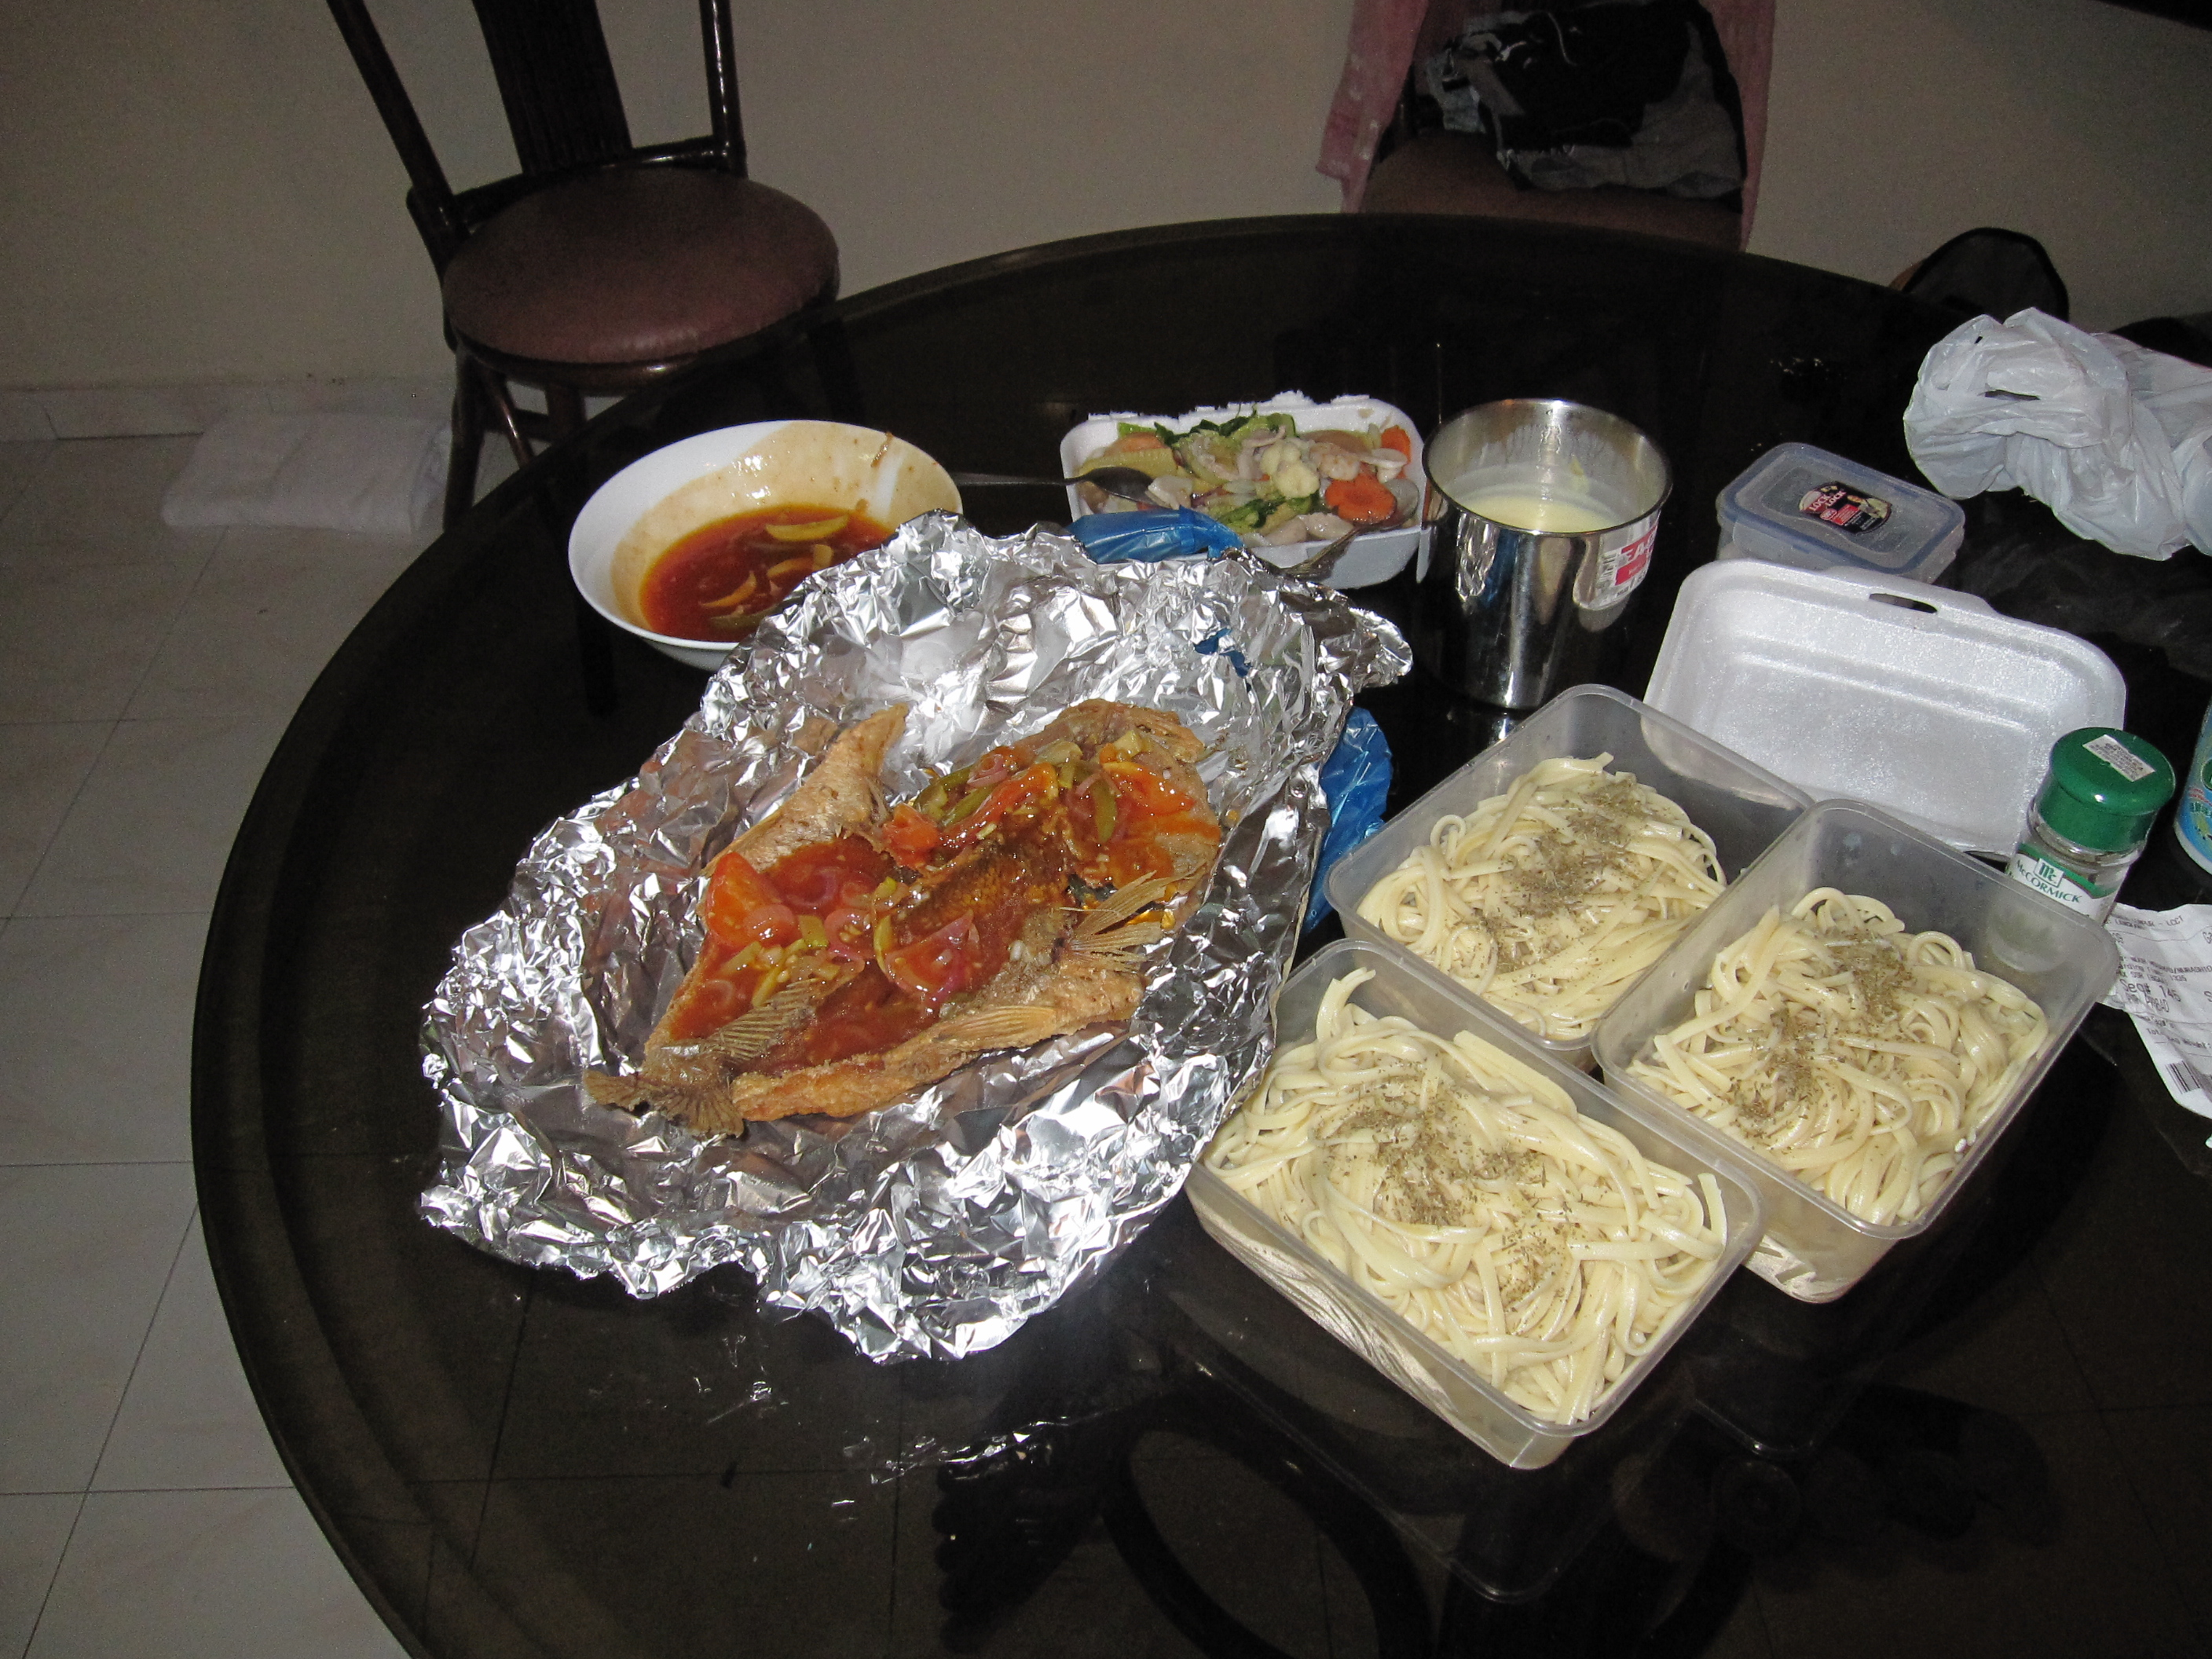 ... prepared dinner for my friends taking part in the toughest race on earth. hahaha.